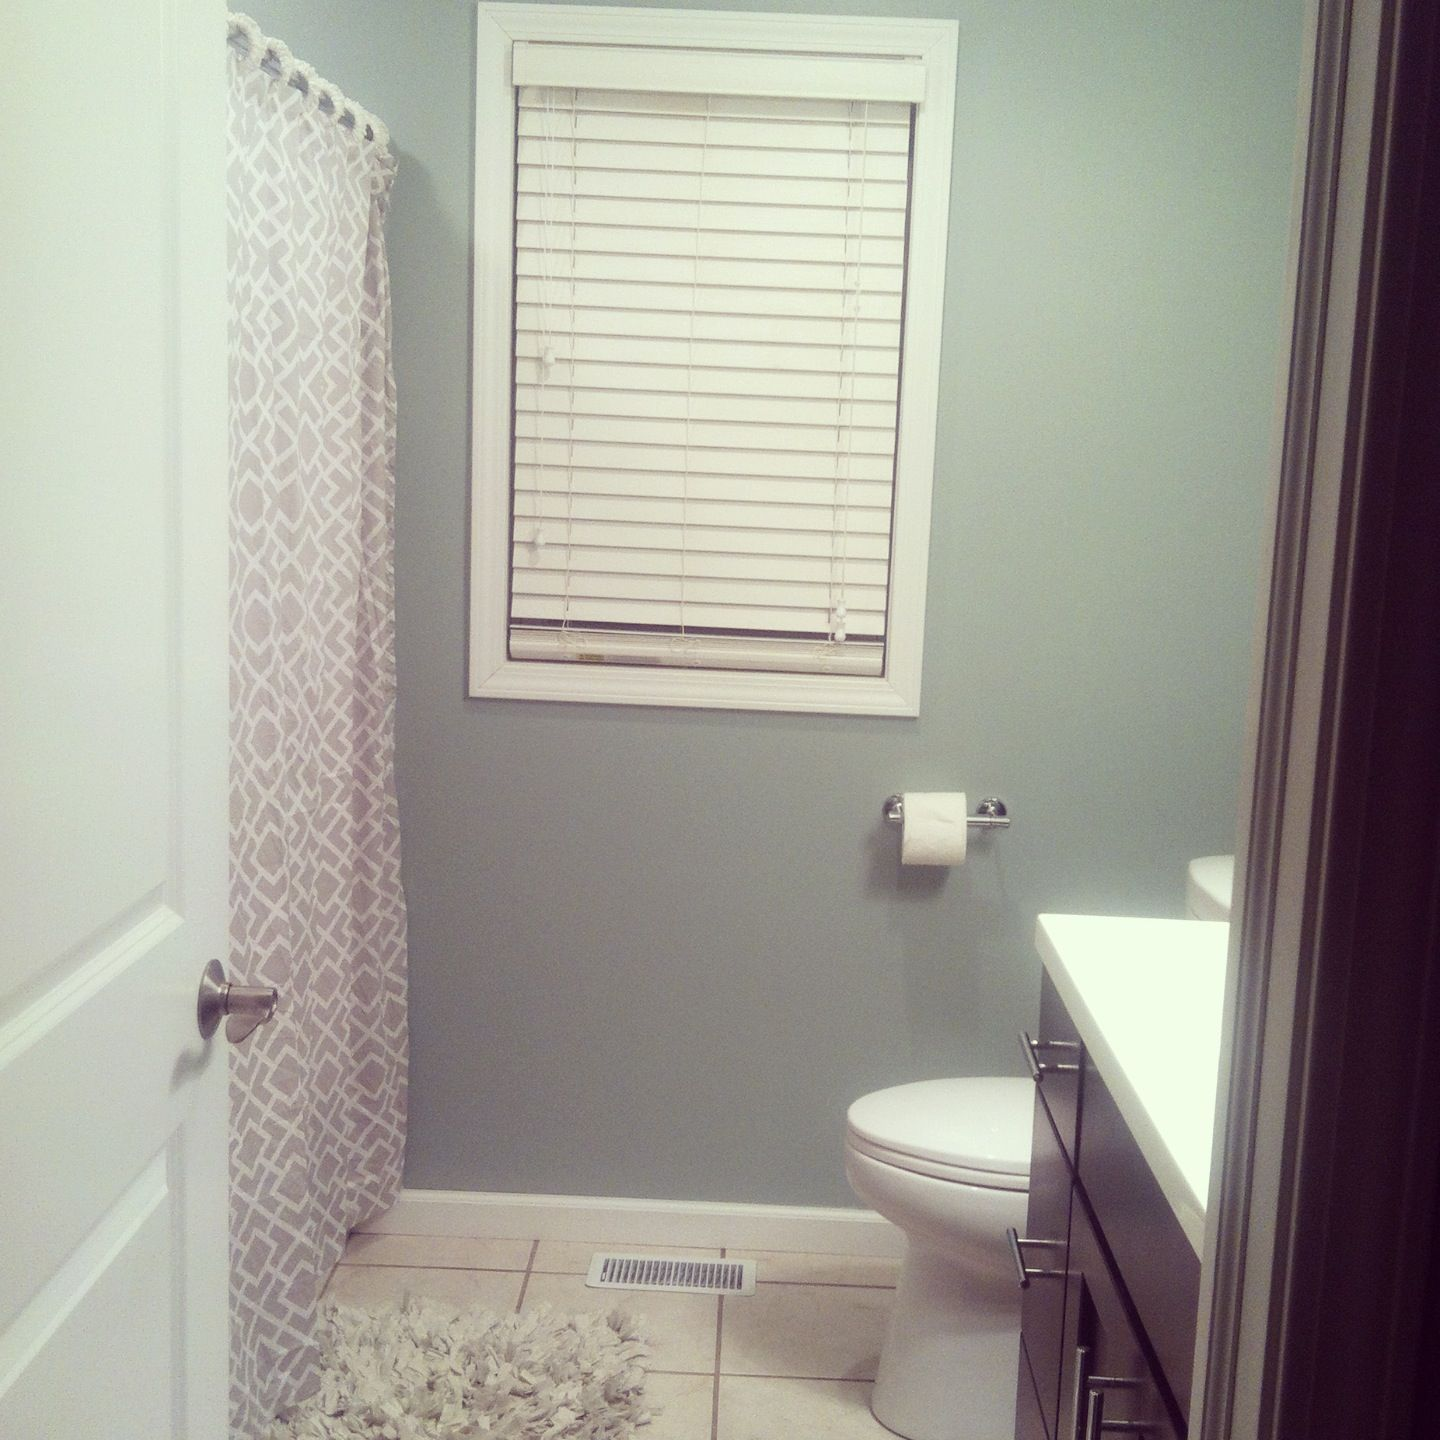 sherwin williams silvermist paint bathroom paint colors